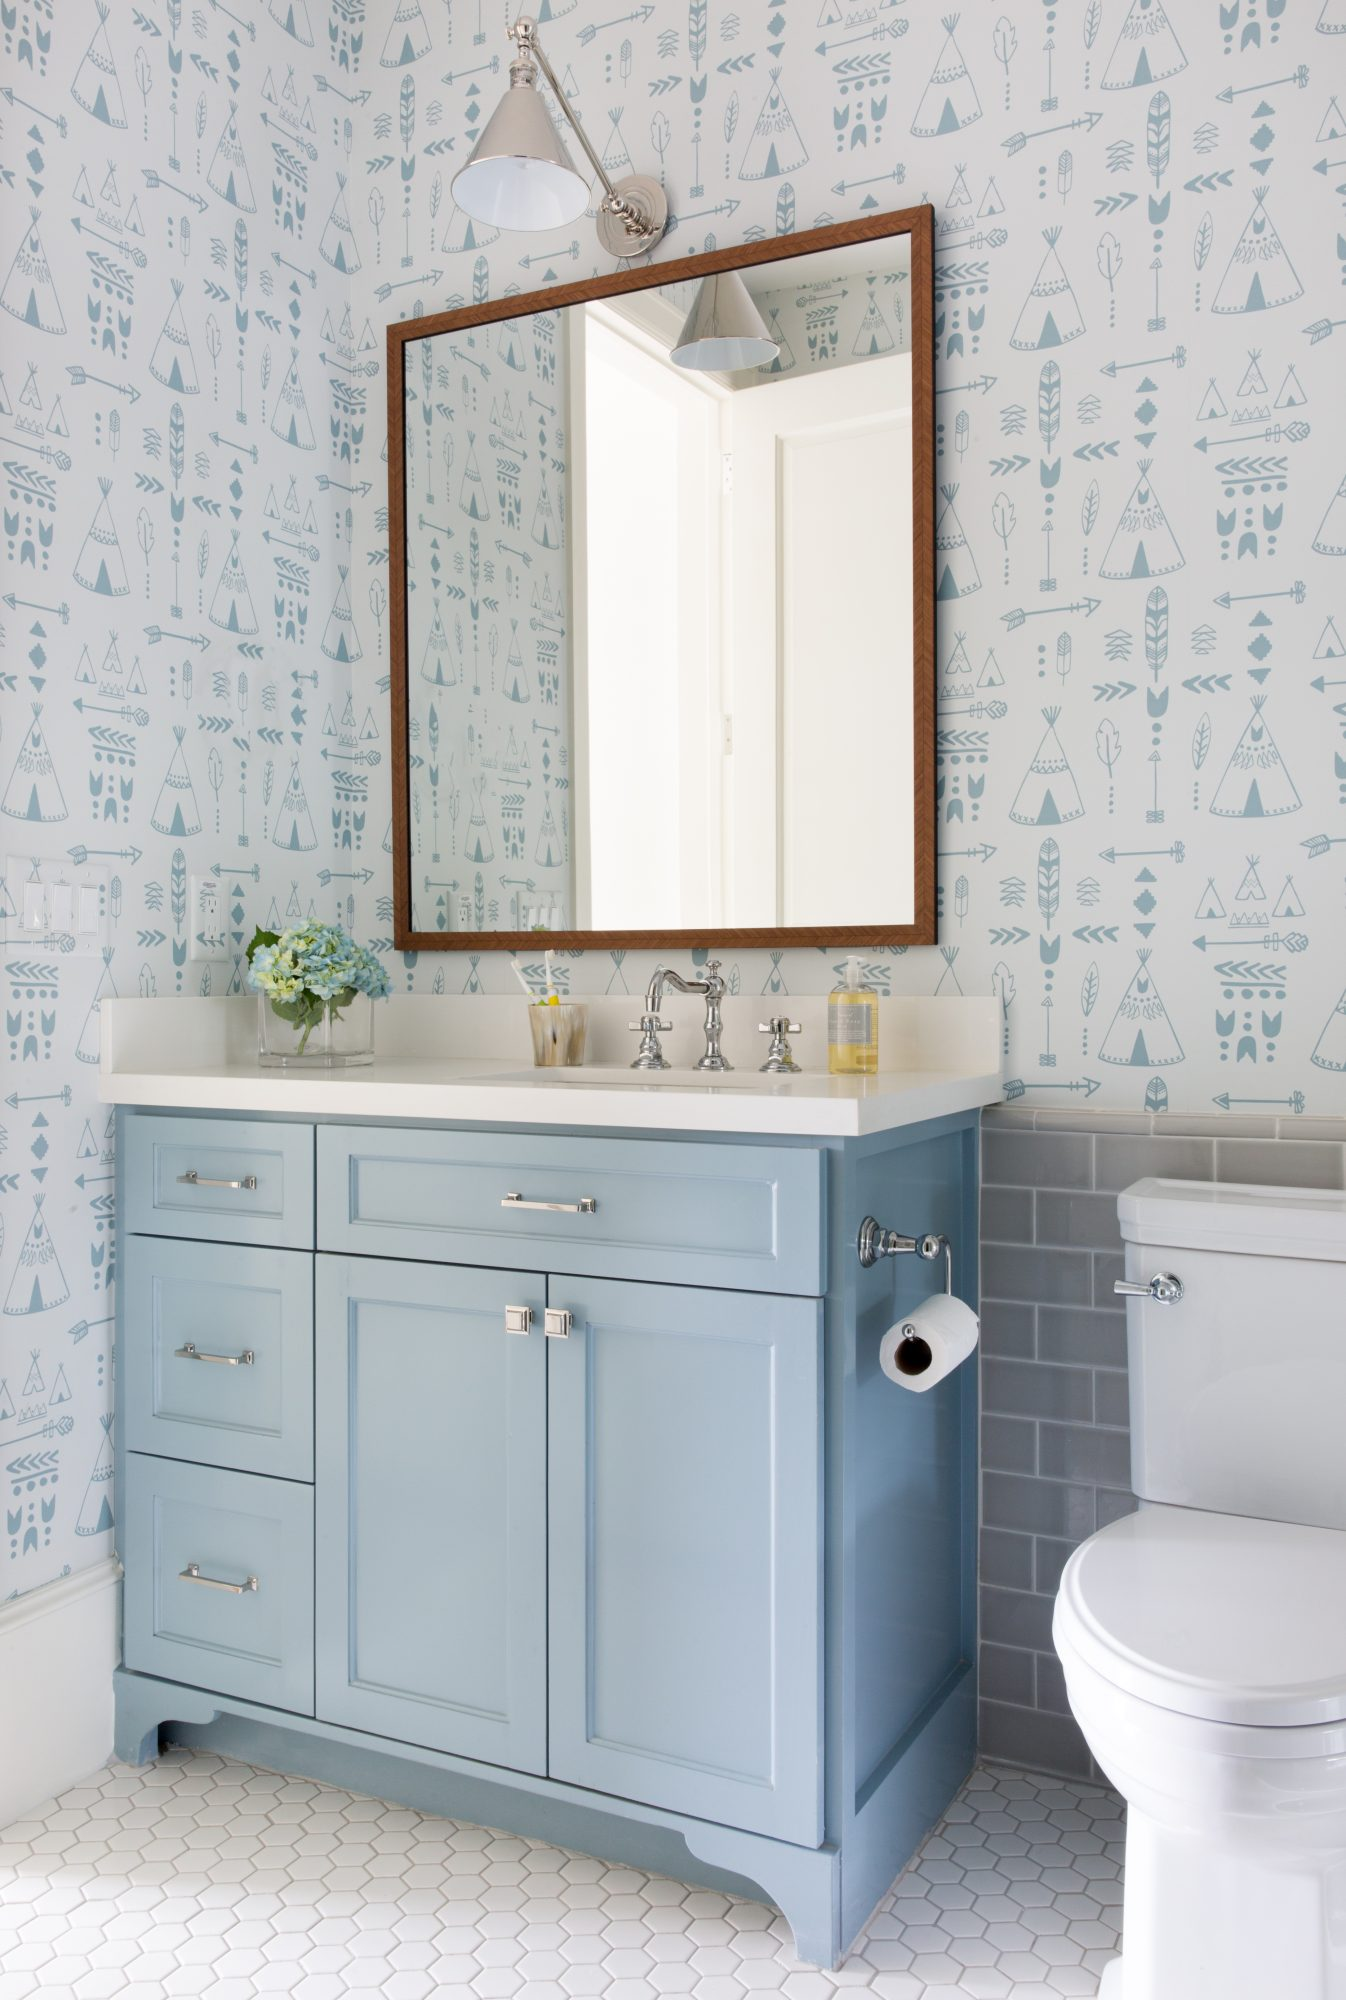 bathroom with blue vanity and patterned wallpaper